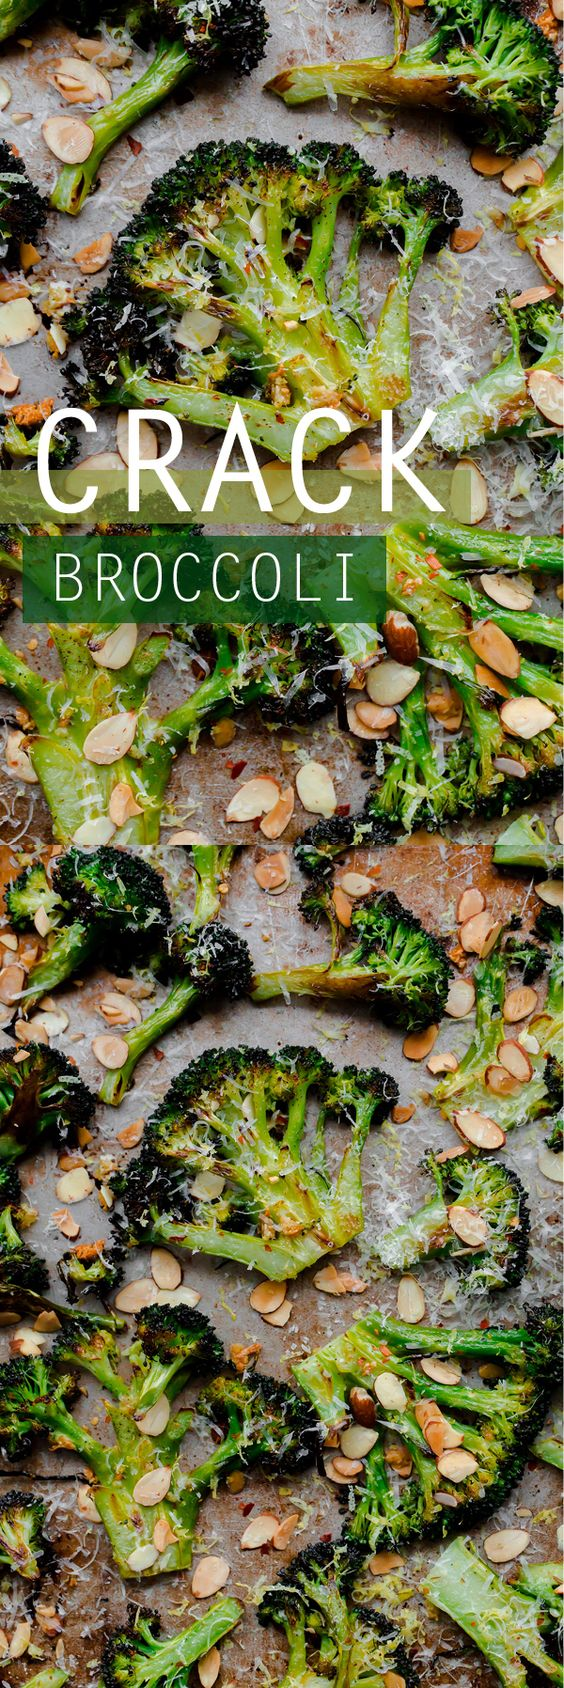 Crack Broccoli.